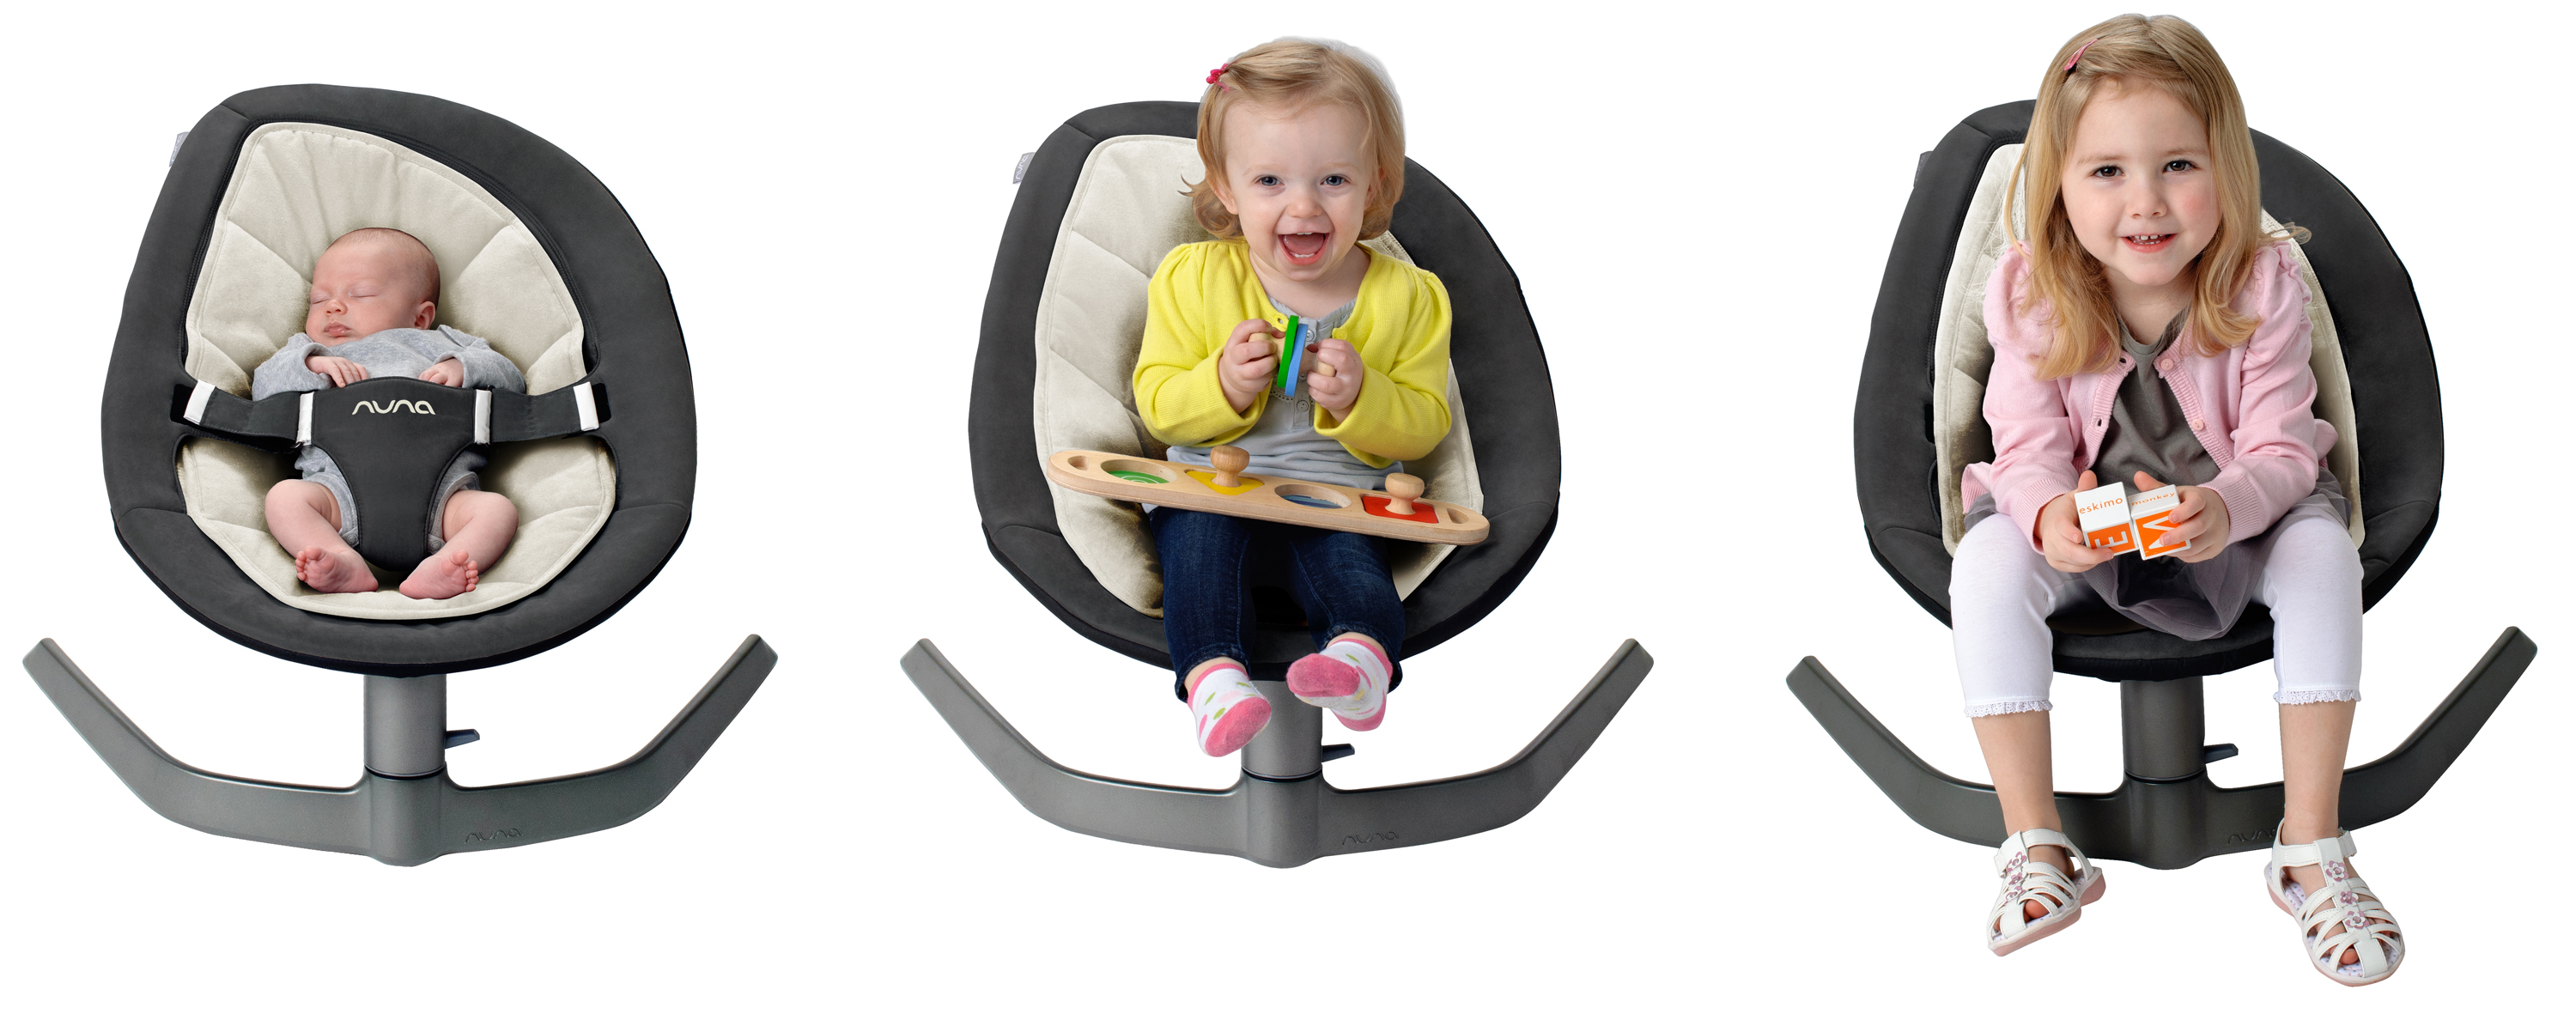 Baby Sleep In Bouncer Or Swing Nuna Leaf Child Seat Review